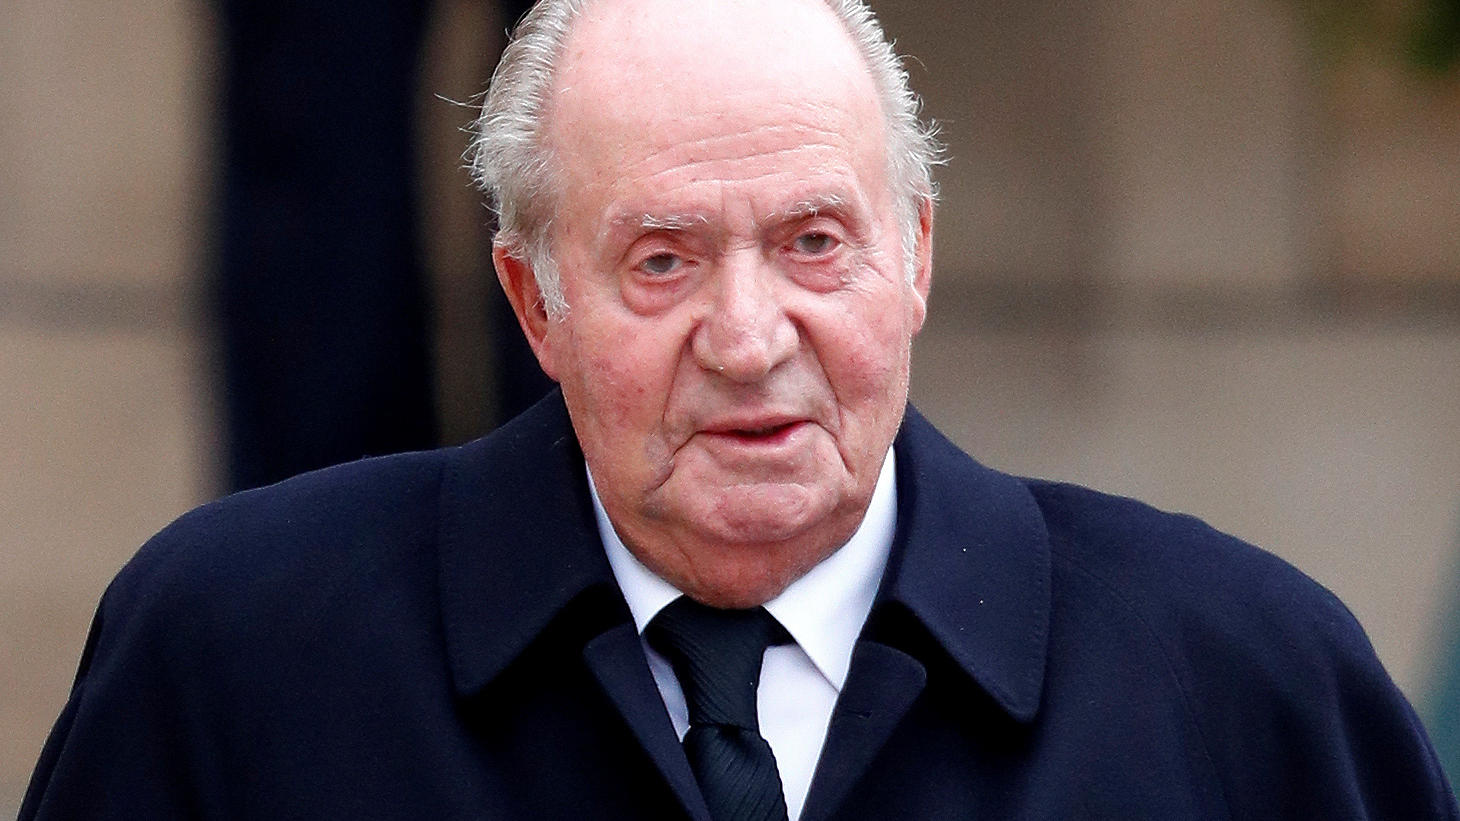 Spain's former king, Juan Carlos, leaves after attending the funeral ceremony of Luxembourg's Grand Duke Jean at the Notre-Dame Cathedral in Luxembourg, May 4, 2019. REUTERS/Francois Lenoir/File Photo